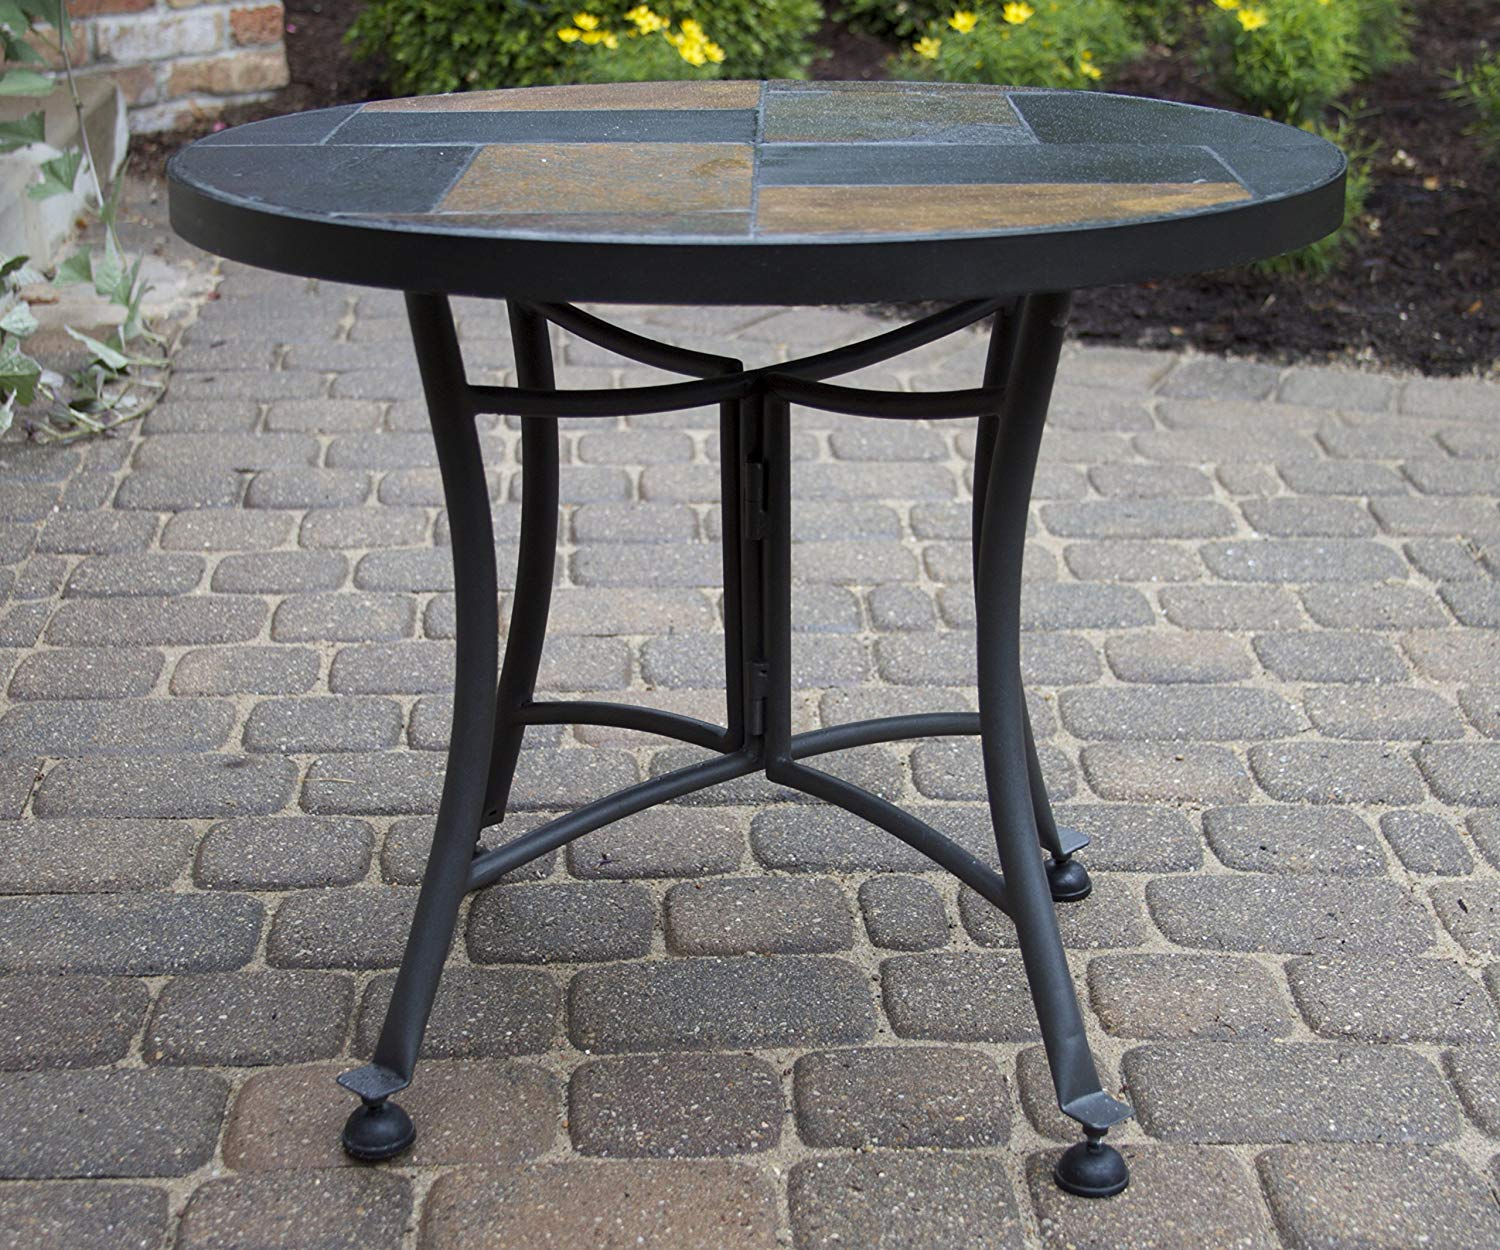 outdoor interiors slate mosaic accent table with metal stone base inch charcoal garden screw sofa legs gray coffee home goods chairs folding bar height patio furniture